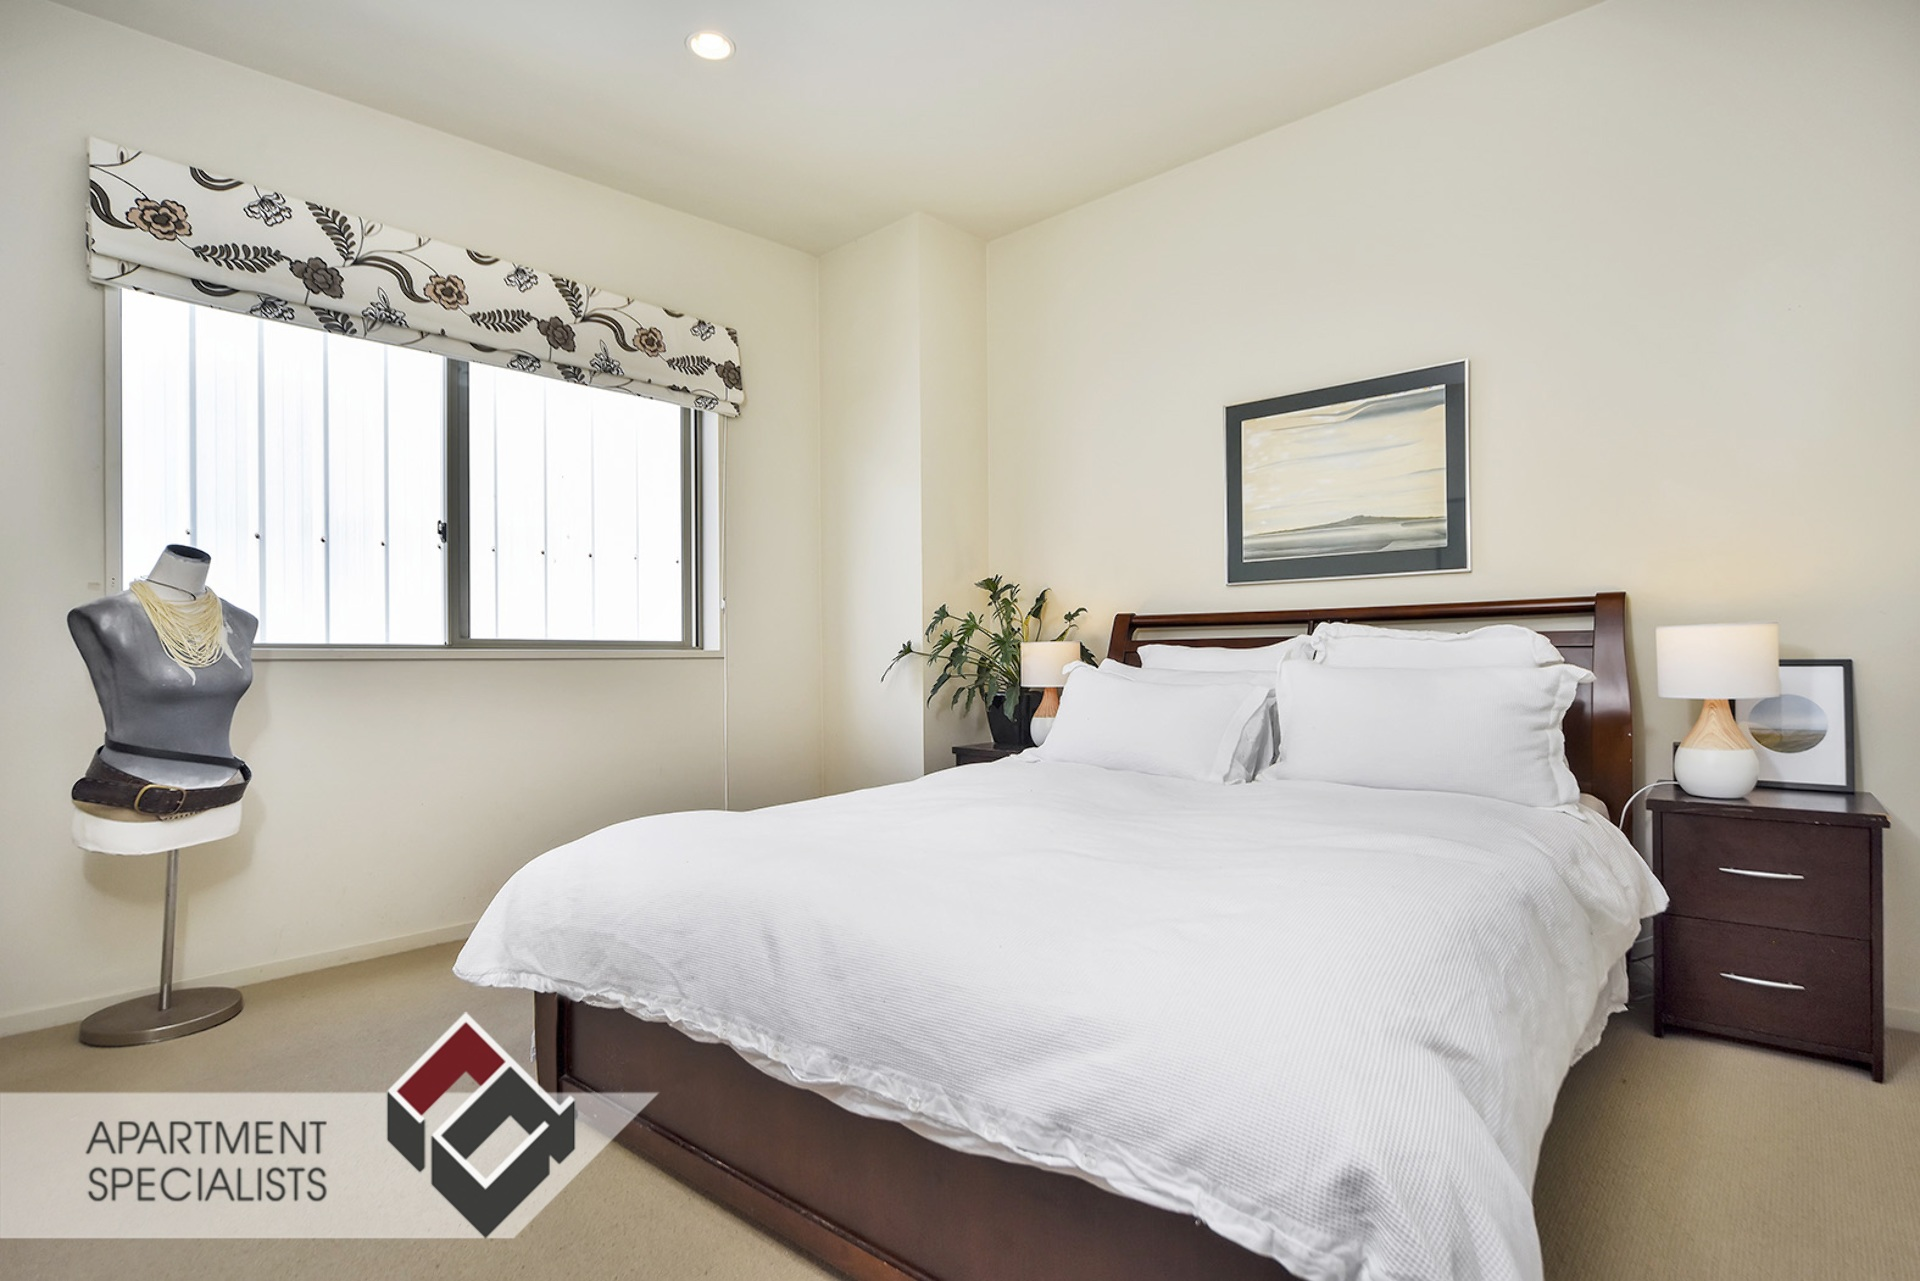 3 | 21 Hunters Park Drive, Three Kings | Apartment Specialists